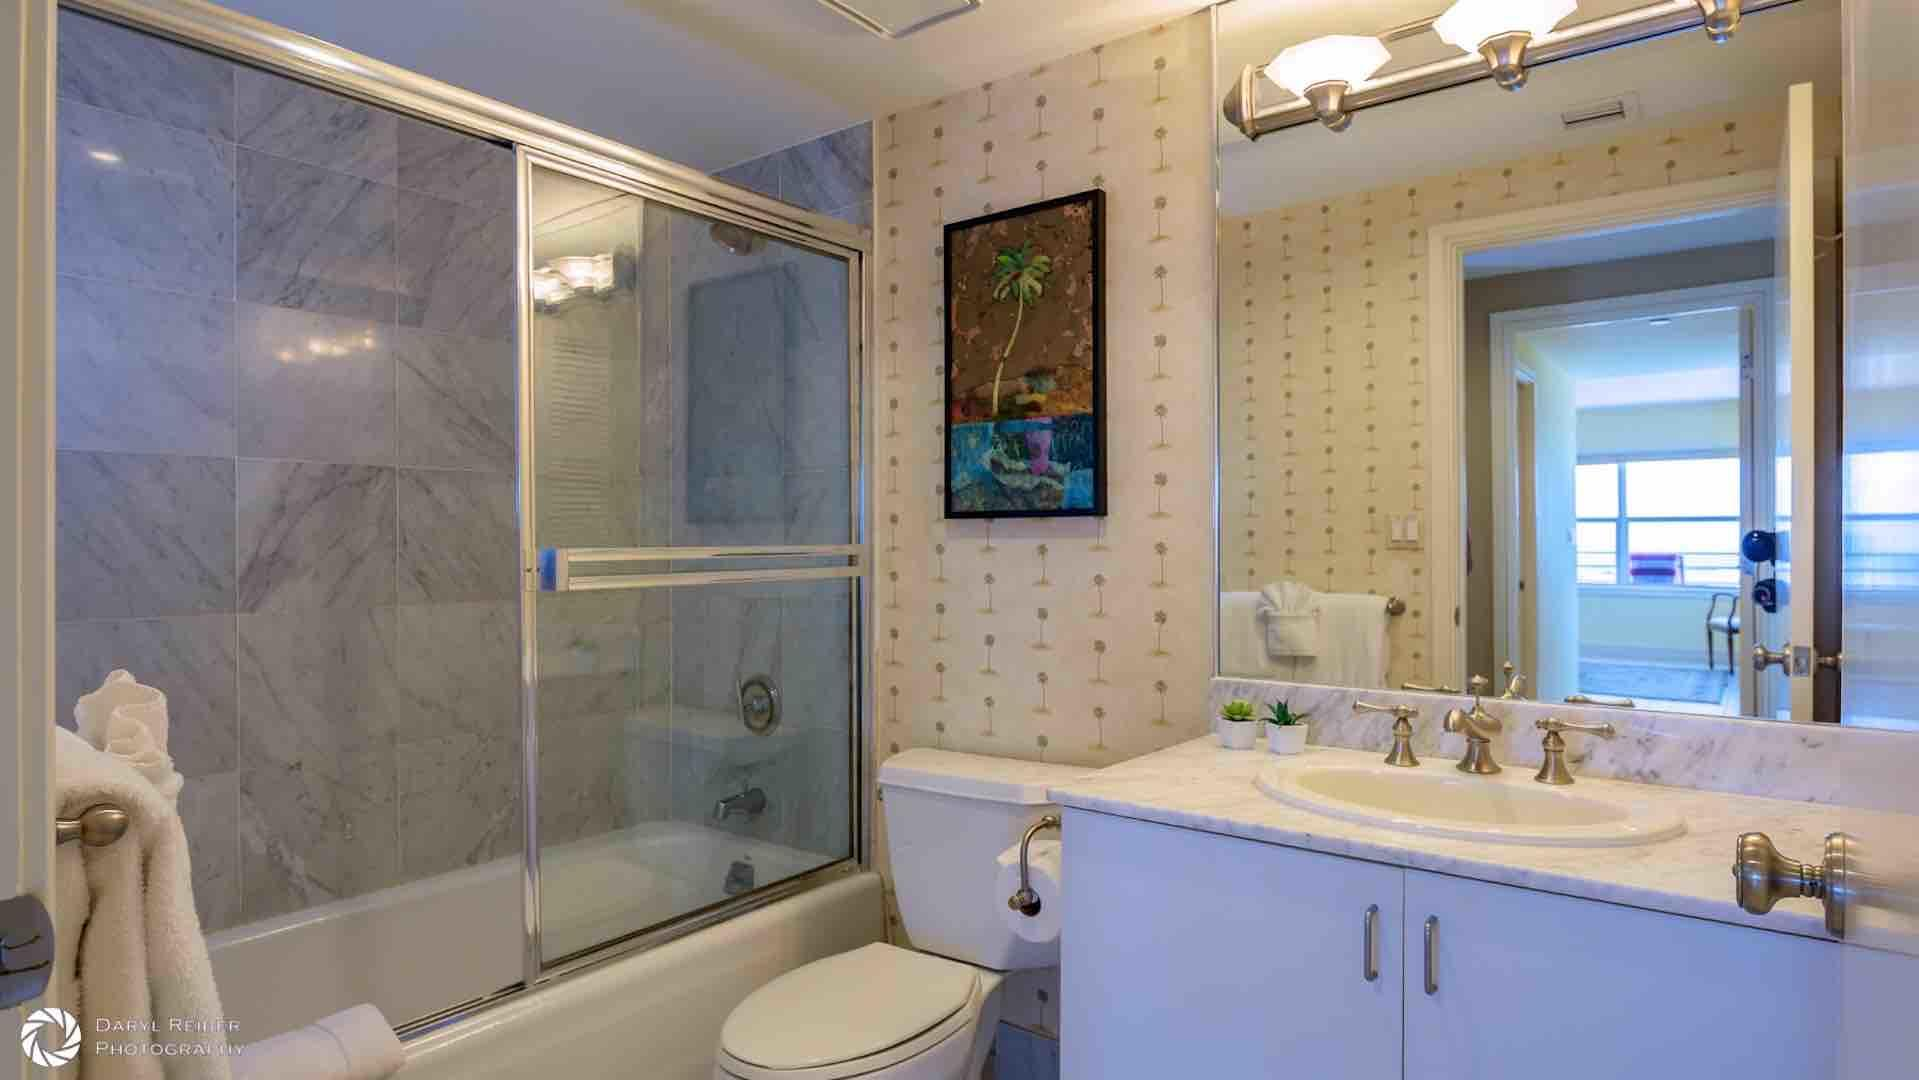 The second full bathroom is right across from the bedroom with tub and shower...